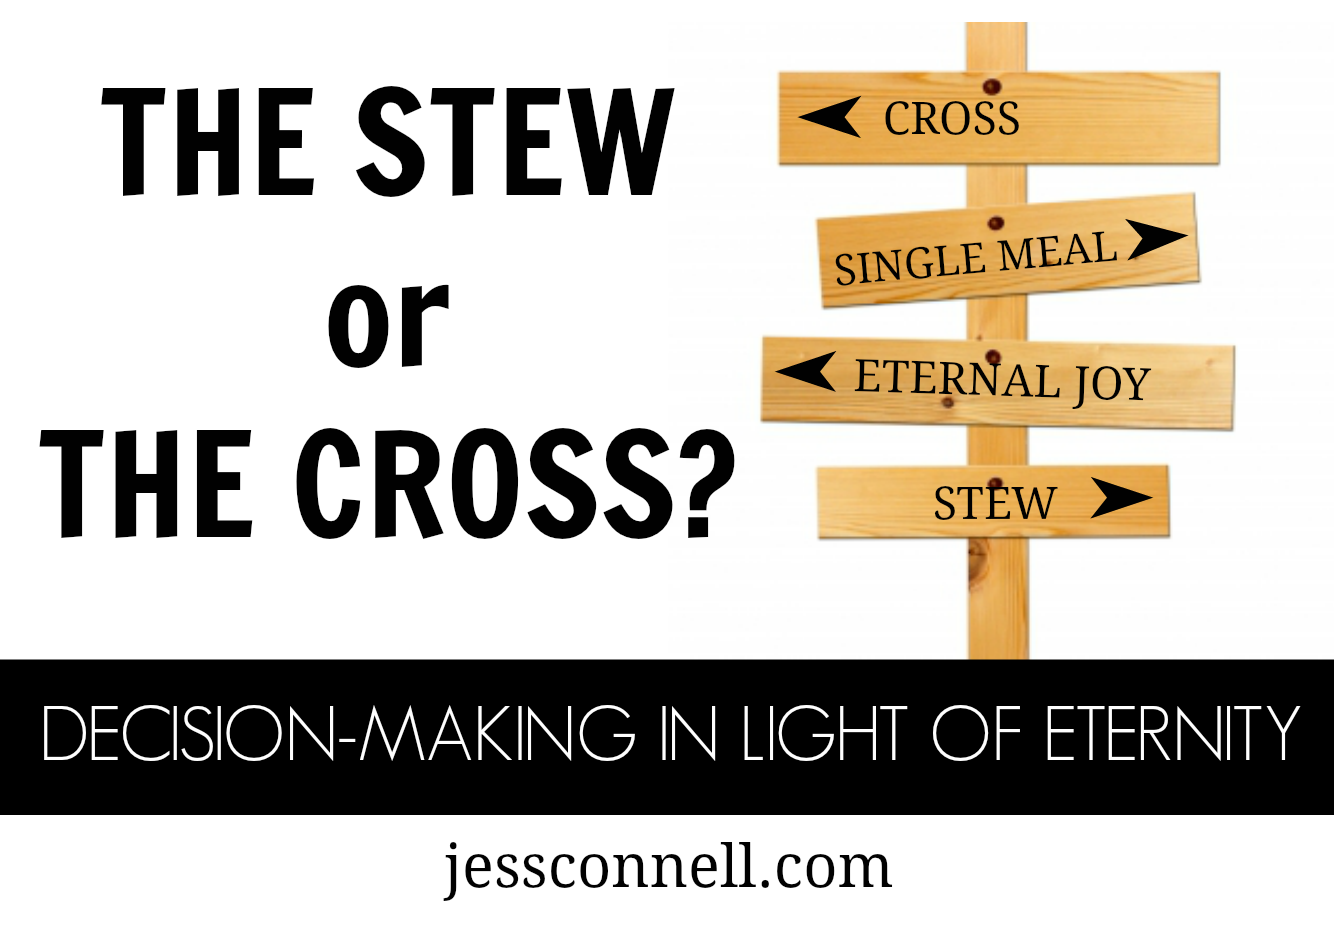 The Stew or the Cross: Decision-Making In Light of Eternity // jessconnell.com